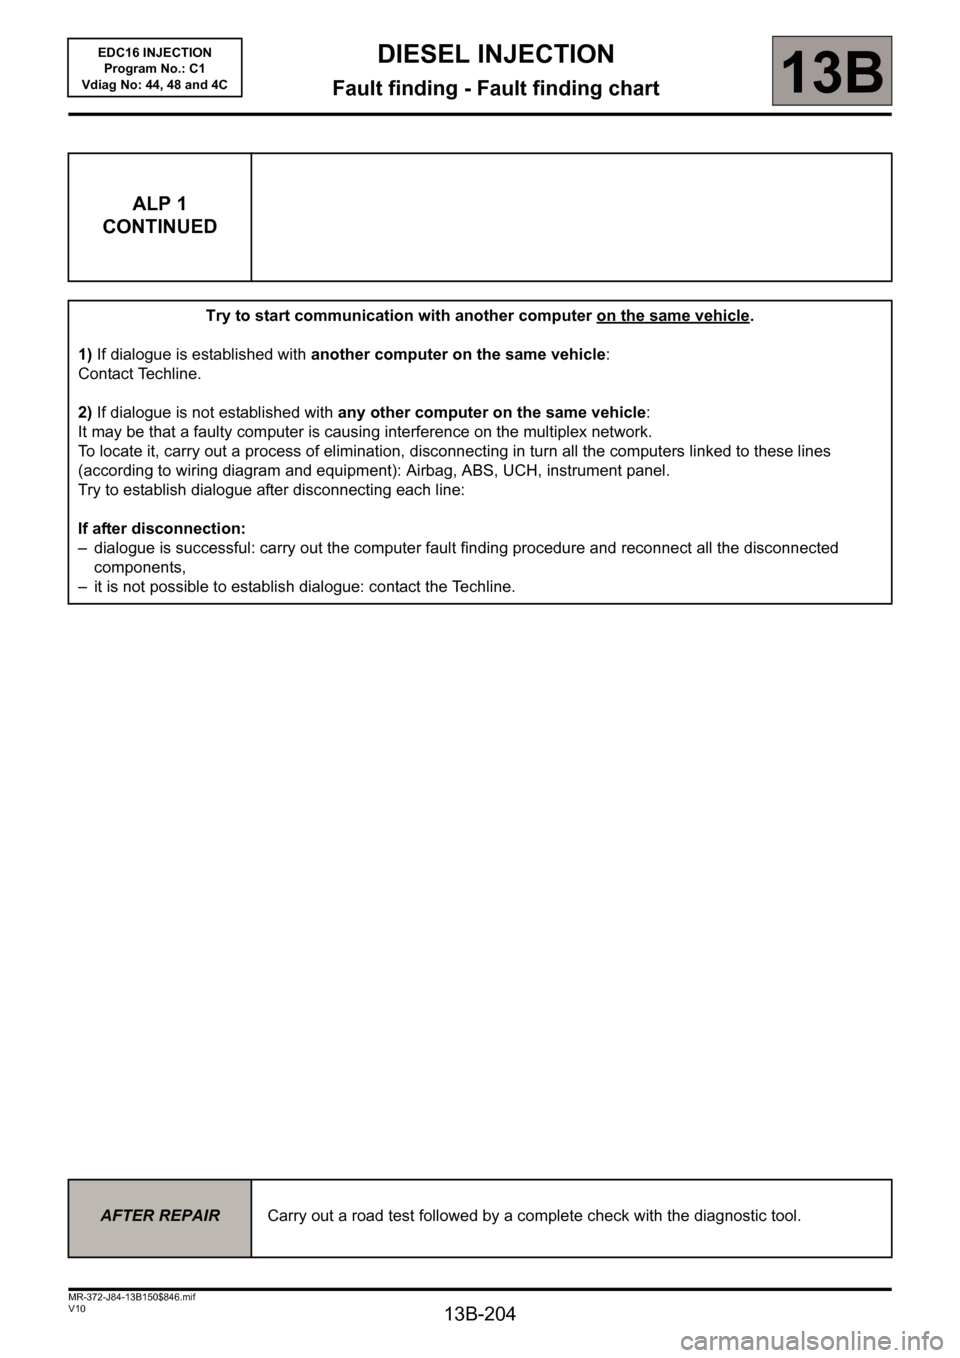 RENAULT SCENIC 2011 J95 / 3.G Engine And Peripherals EDC16 Injection Workshop Manual, Page 204